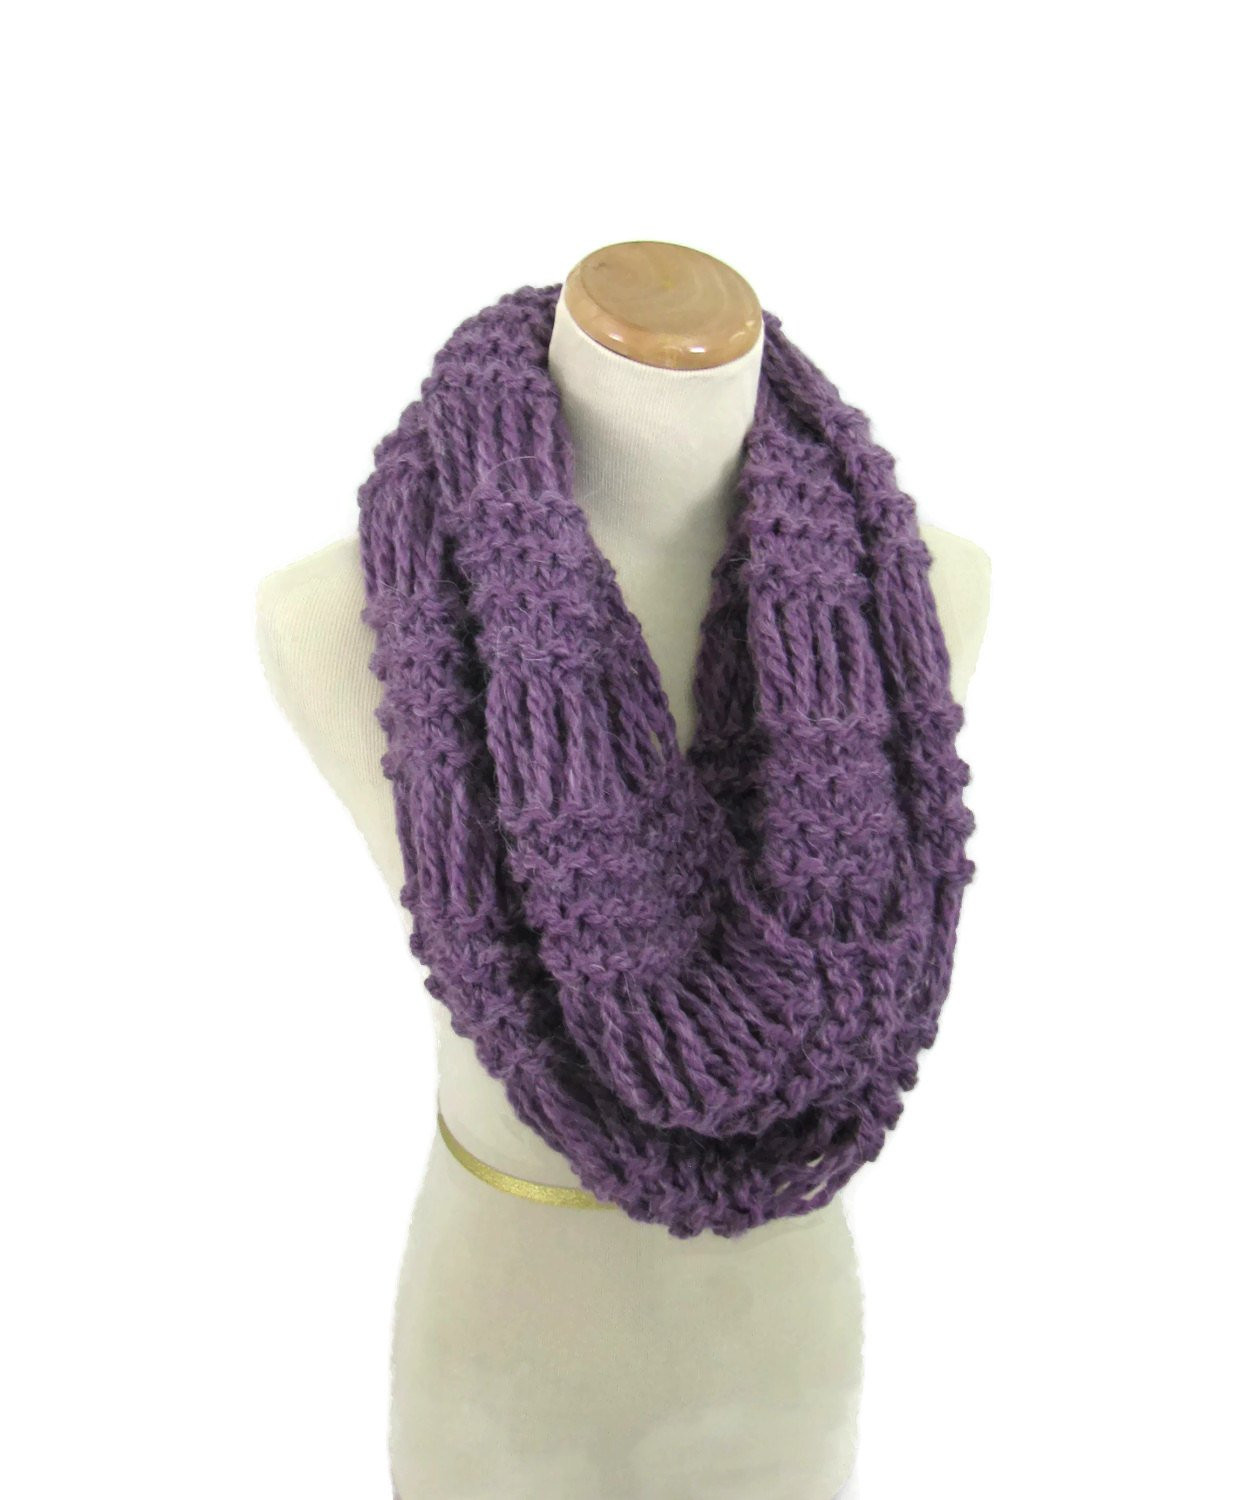 Unique Infinity Scarf Knit Scarf Loop Scarf Neck Warmer Circle Knit Circle Scarf Of Brilliant 47 Photos Knit Circle Scarf